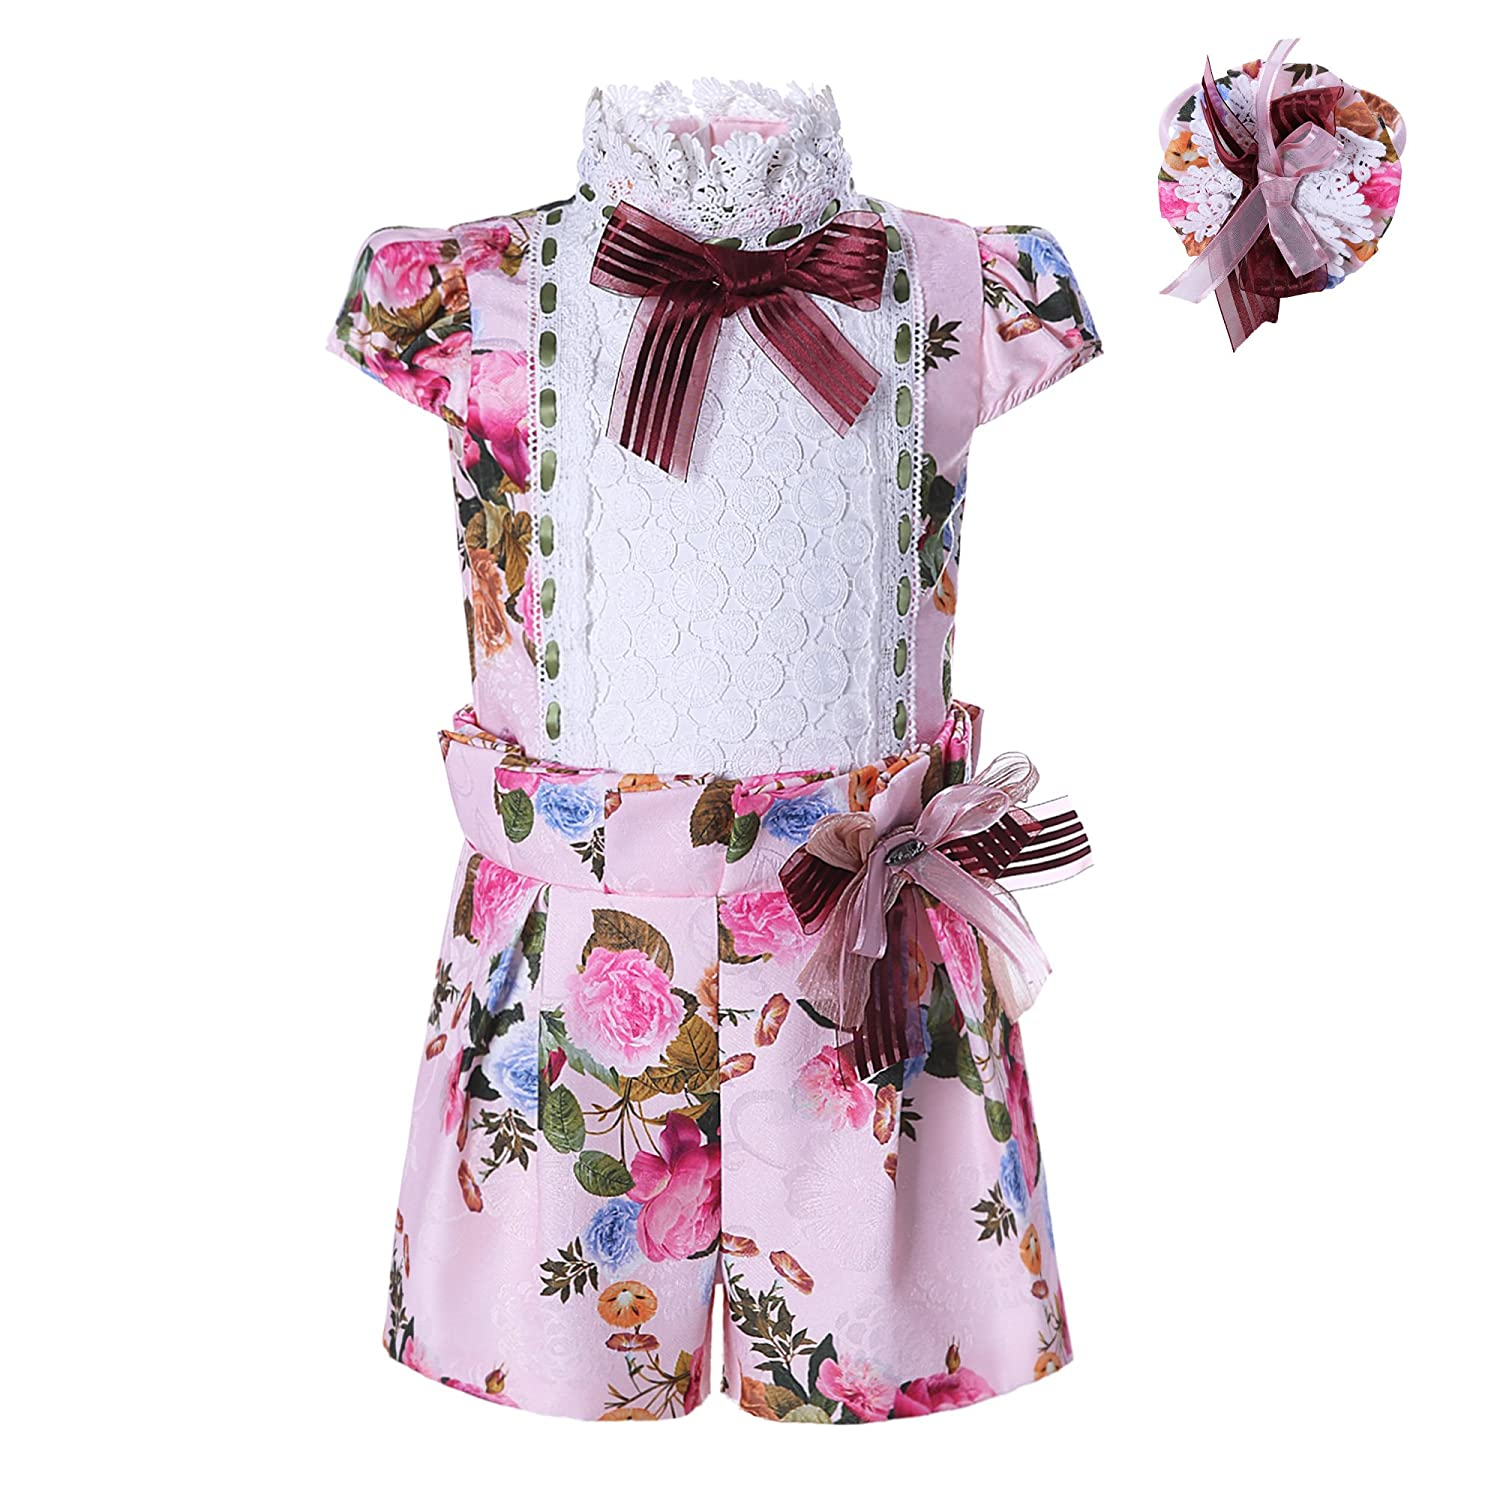 Lajinirr Girls Clothes Set Jumpsuit Lace Jacquard Floral Printed Sleeveless Tops and Shorts Outfits 2-12 Years Floral Girl-1330